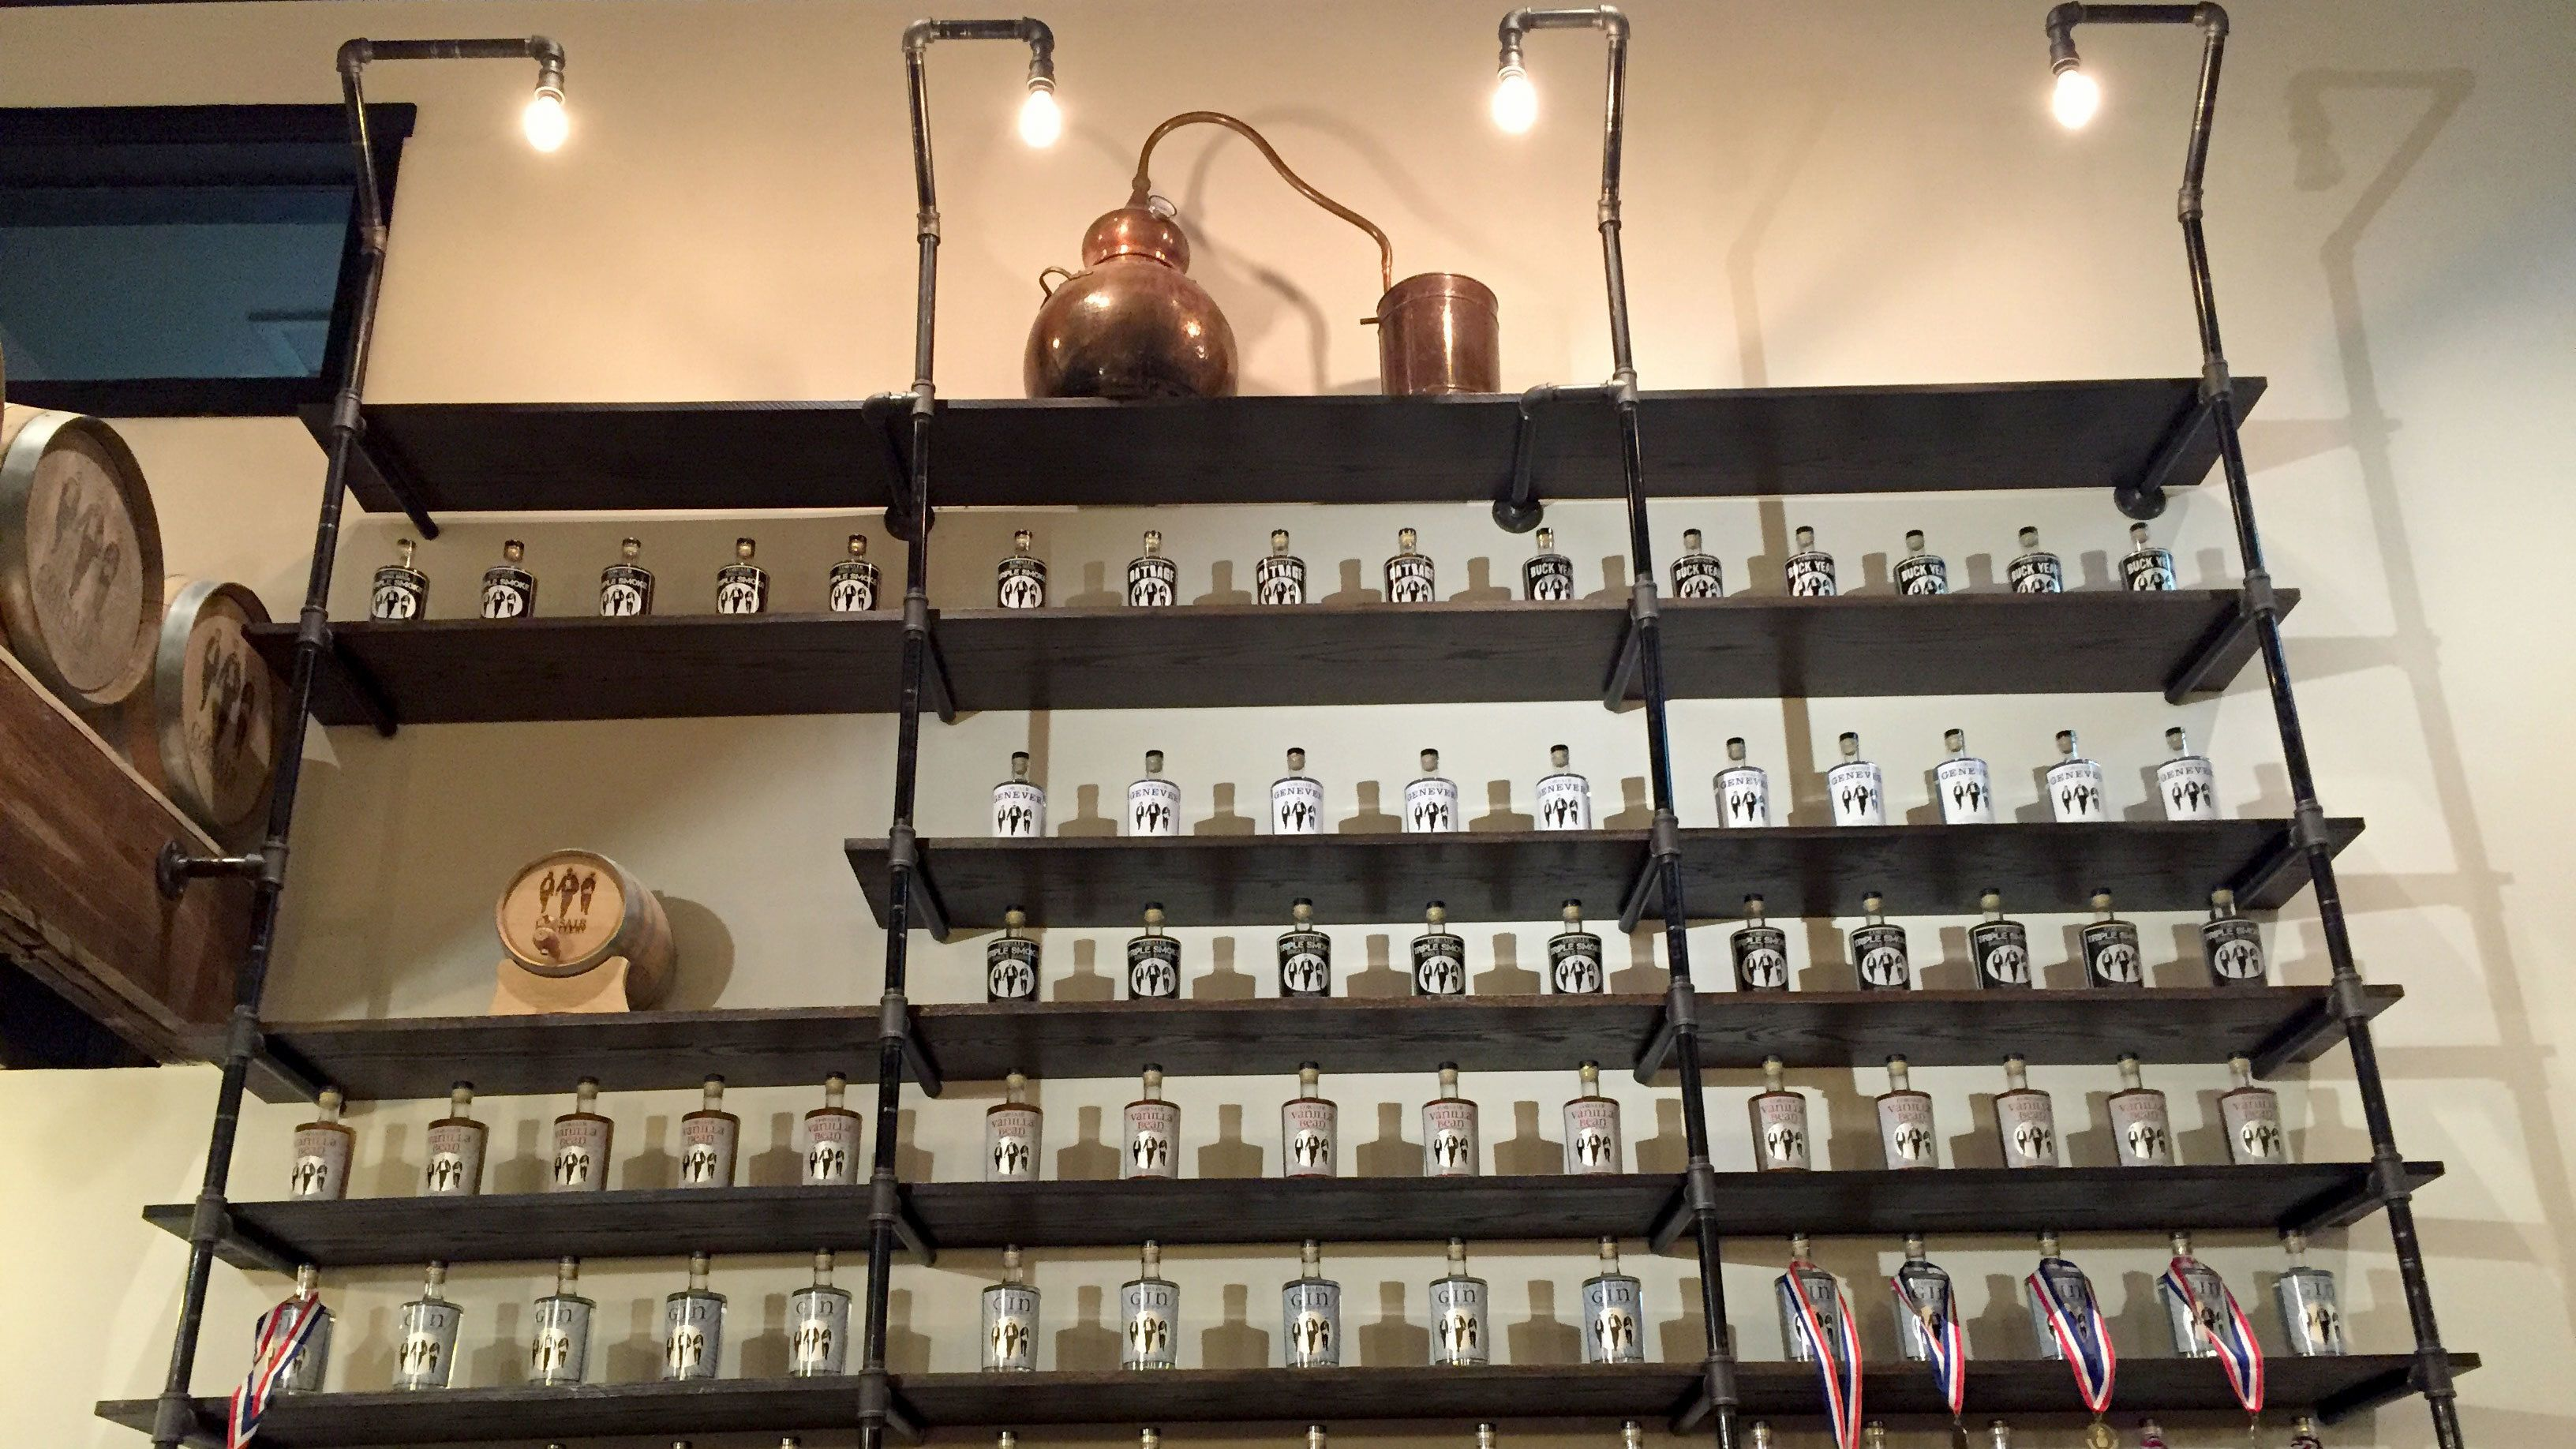 Shelves with bottles at a distillery in Tennessee